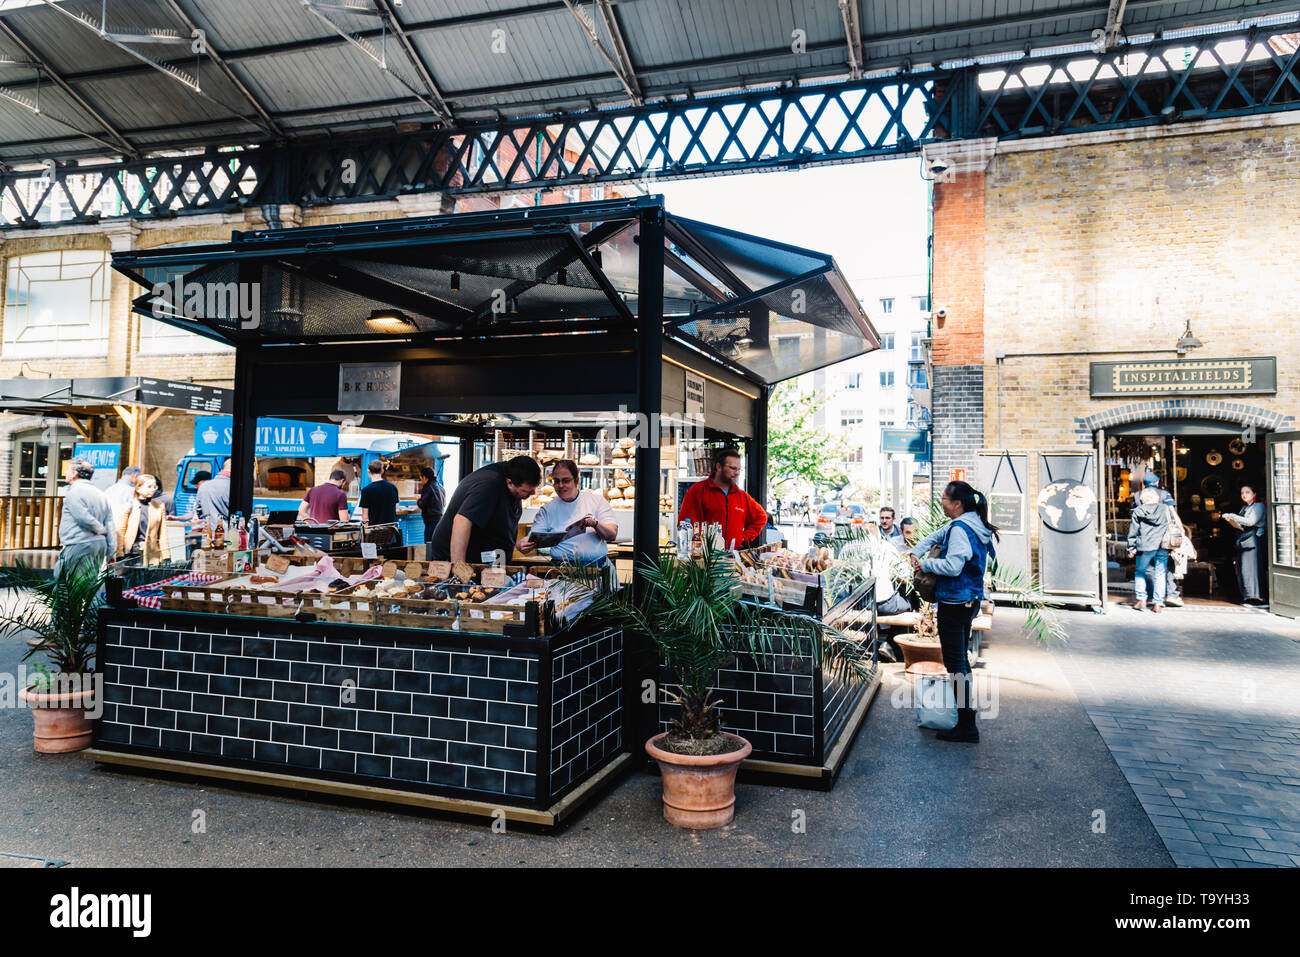 London, UK - May 14, 2019:  Old Spitalfields market with unidentified people. Bakery and pastry stall. The market  hosts arts and craft and street foo Stock Photo